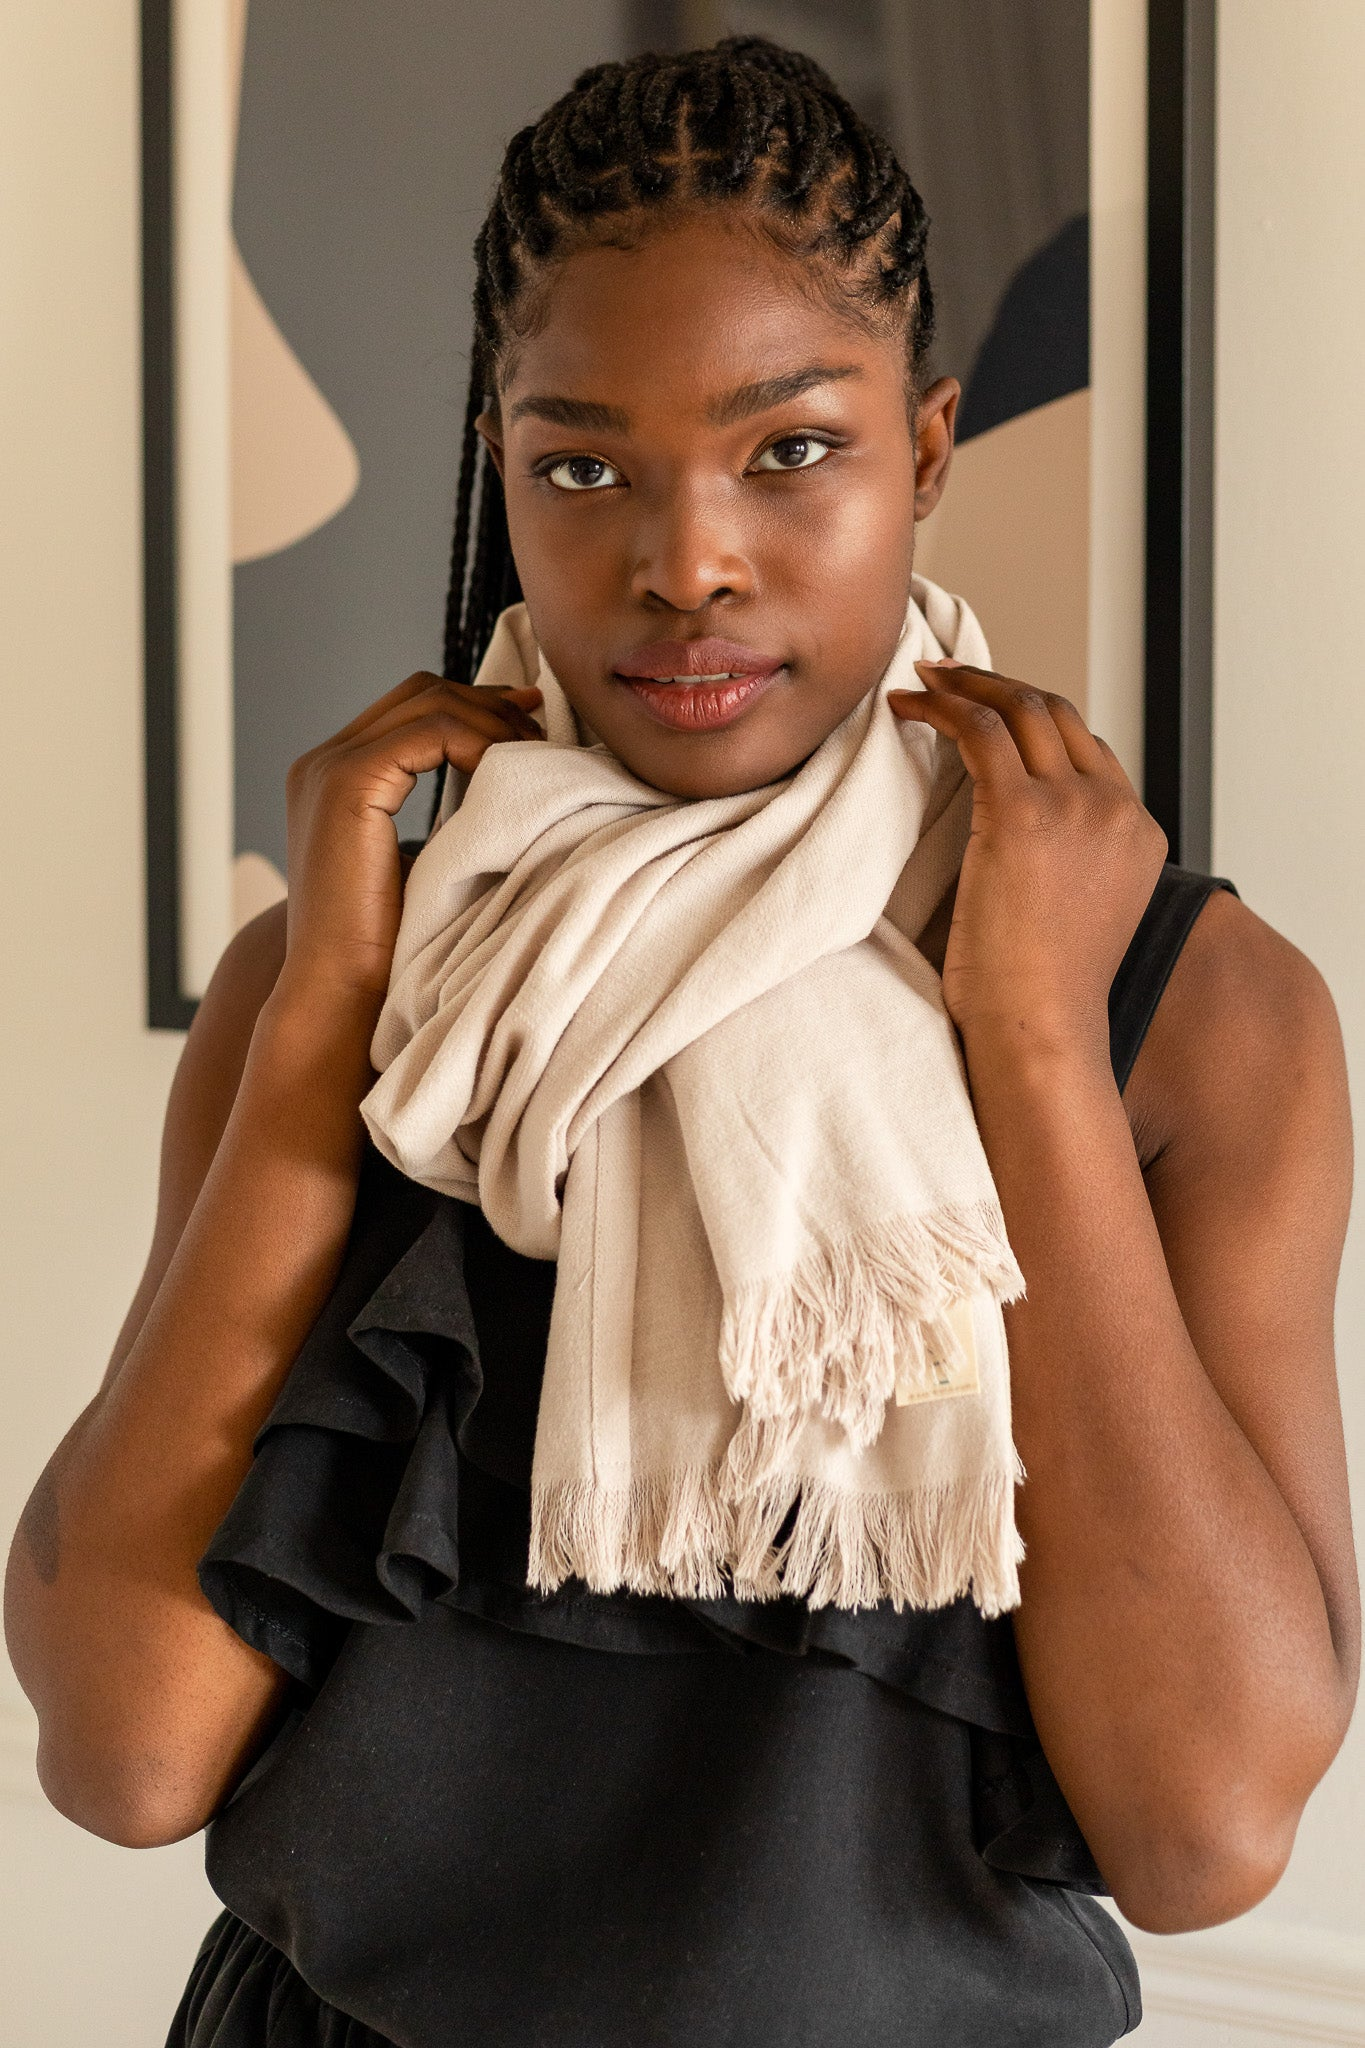 woman wearing all black except a winer white scarf tied around her neck